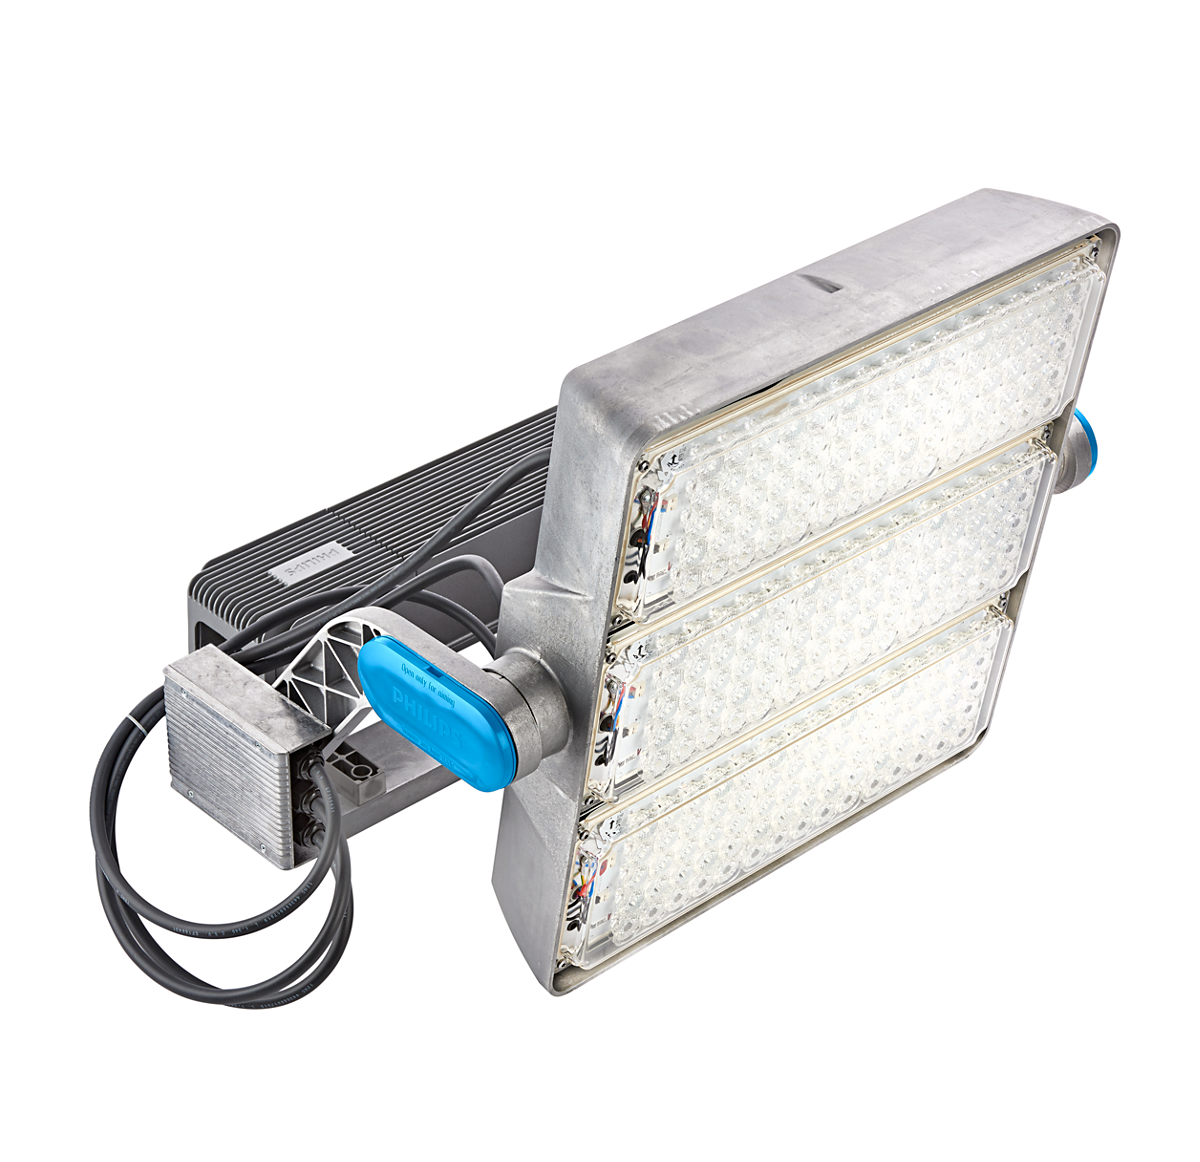 Arenavision Led Gen2 High End Sports Floodlighting Philips Lighting Phillips Drivers Wiring Diagram